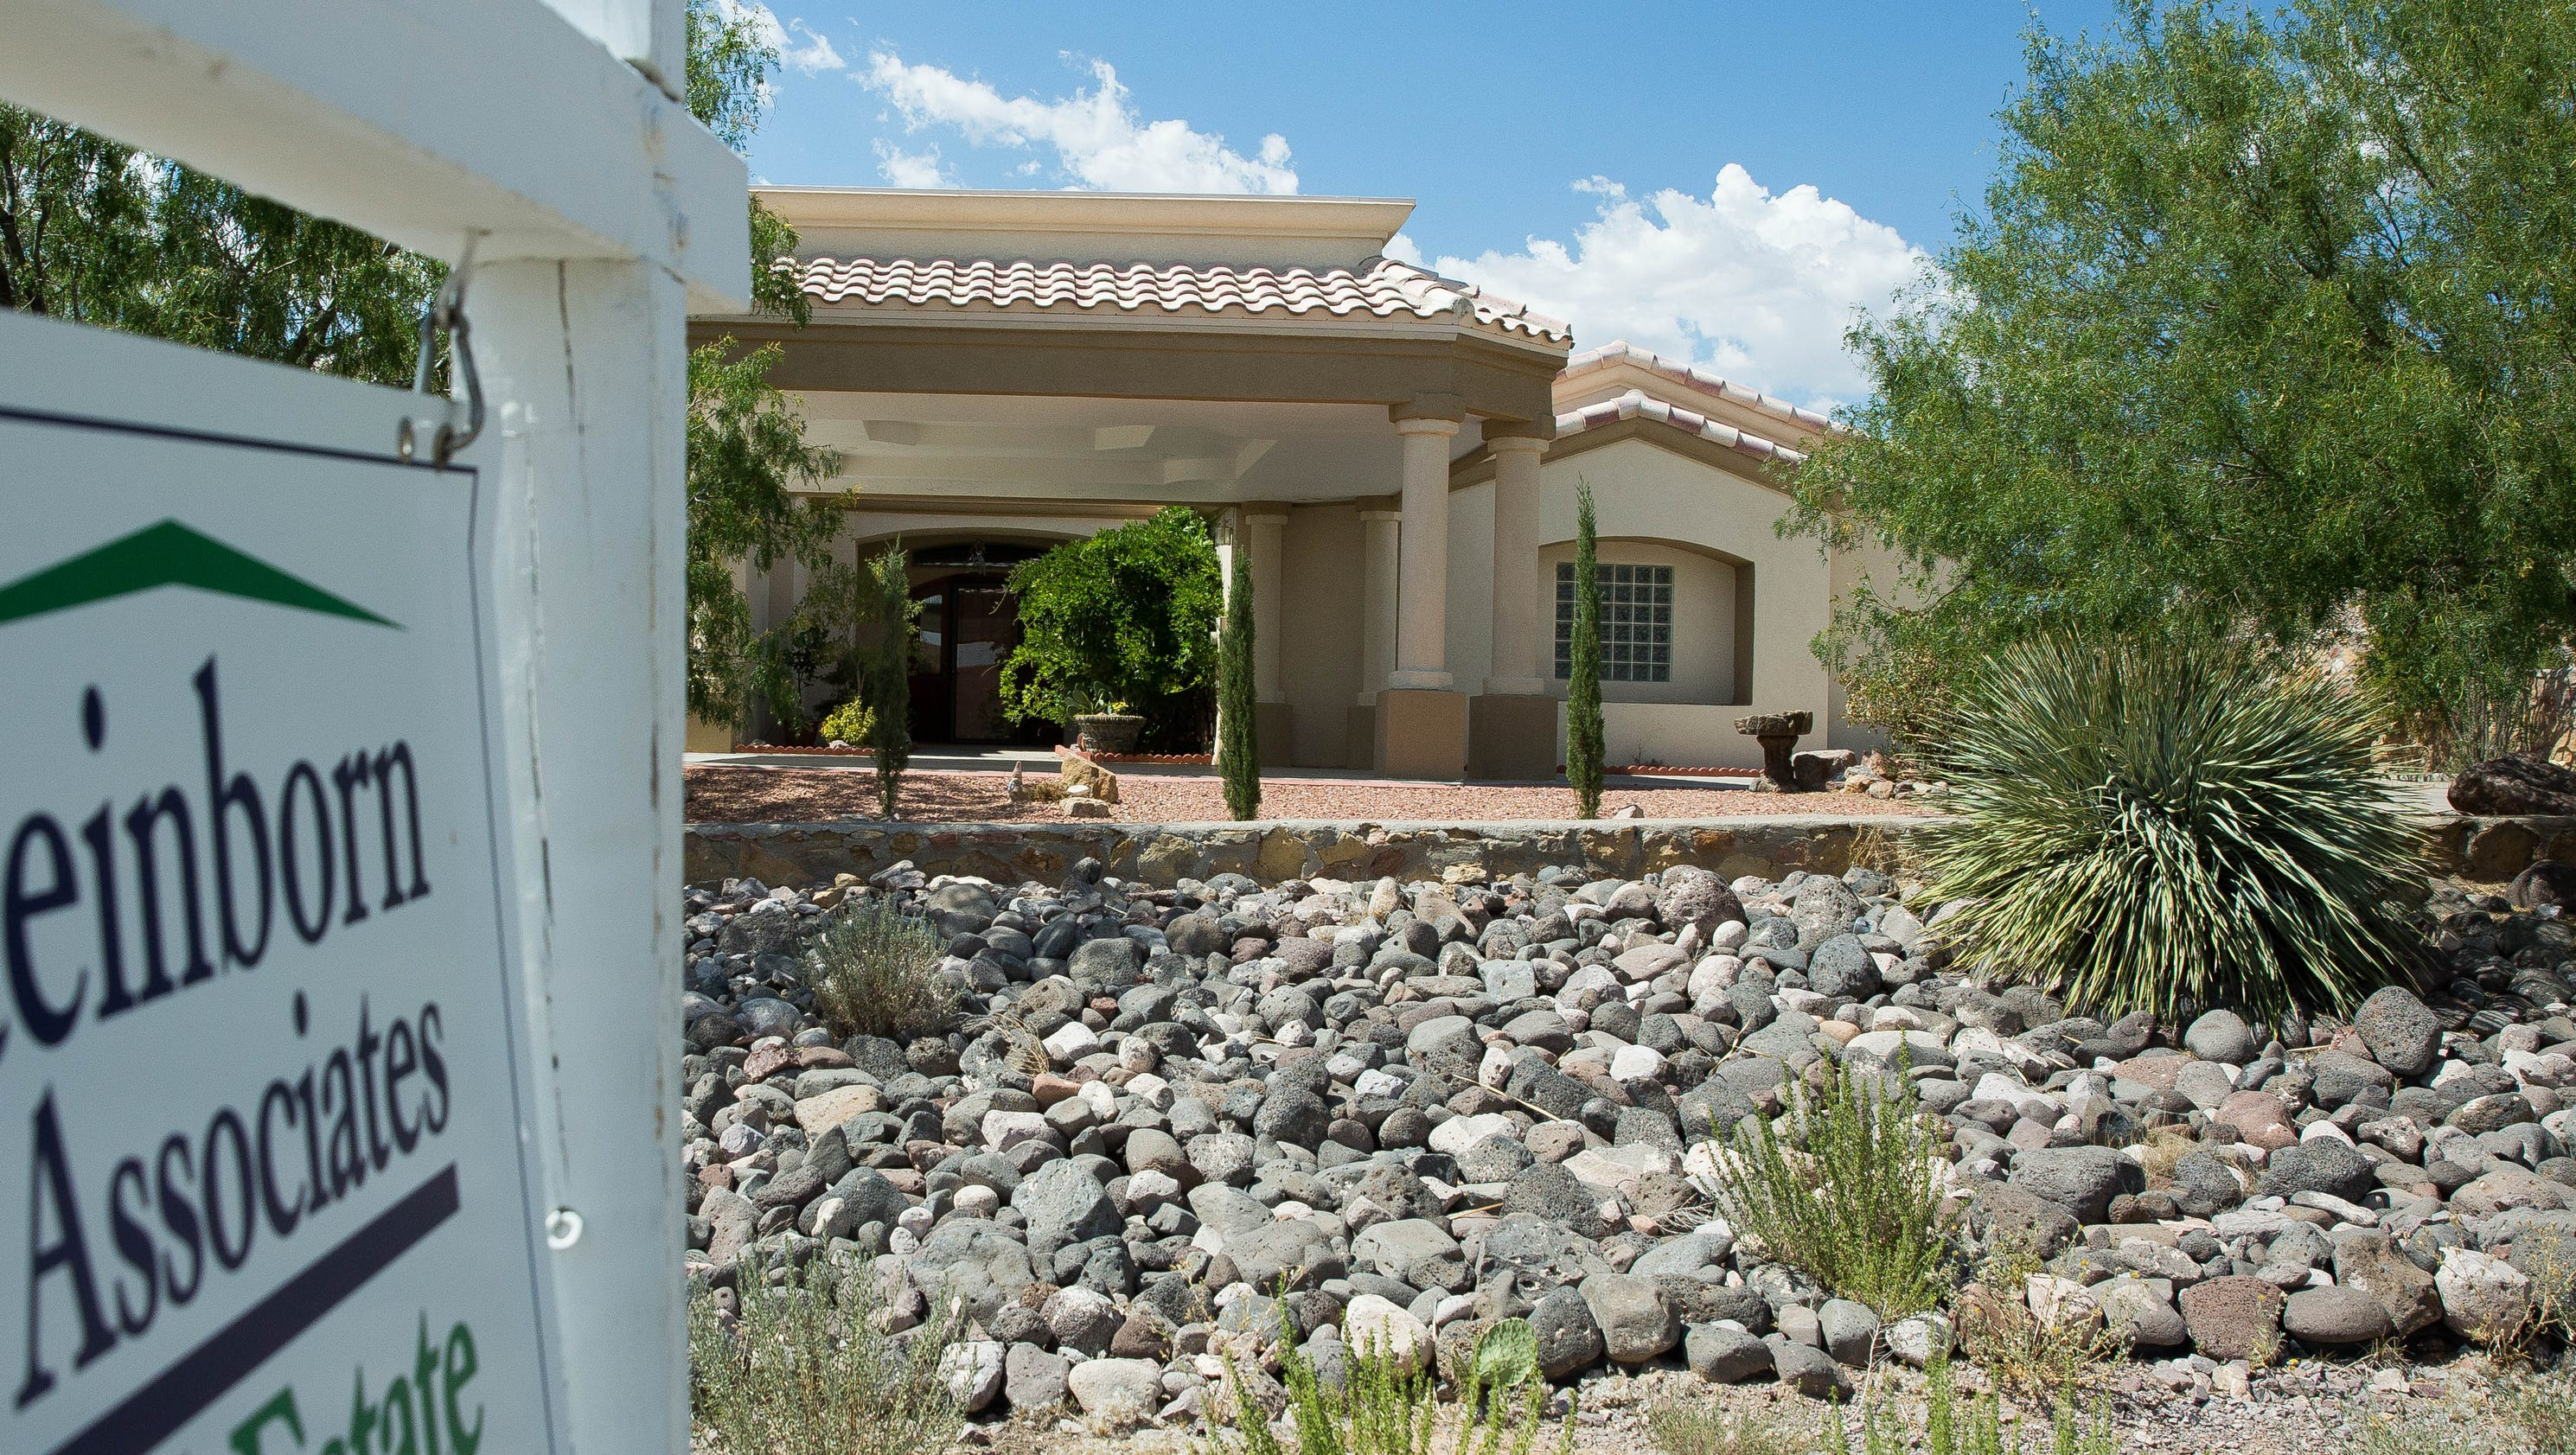 High end homes heat up las cruces real estate market for Las cruces home builders